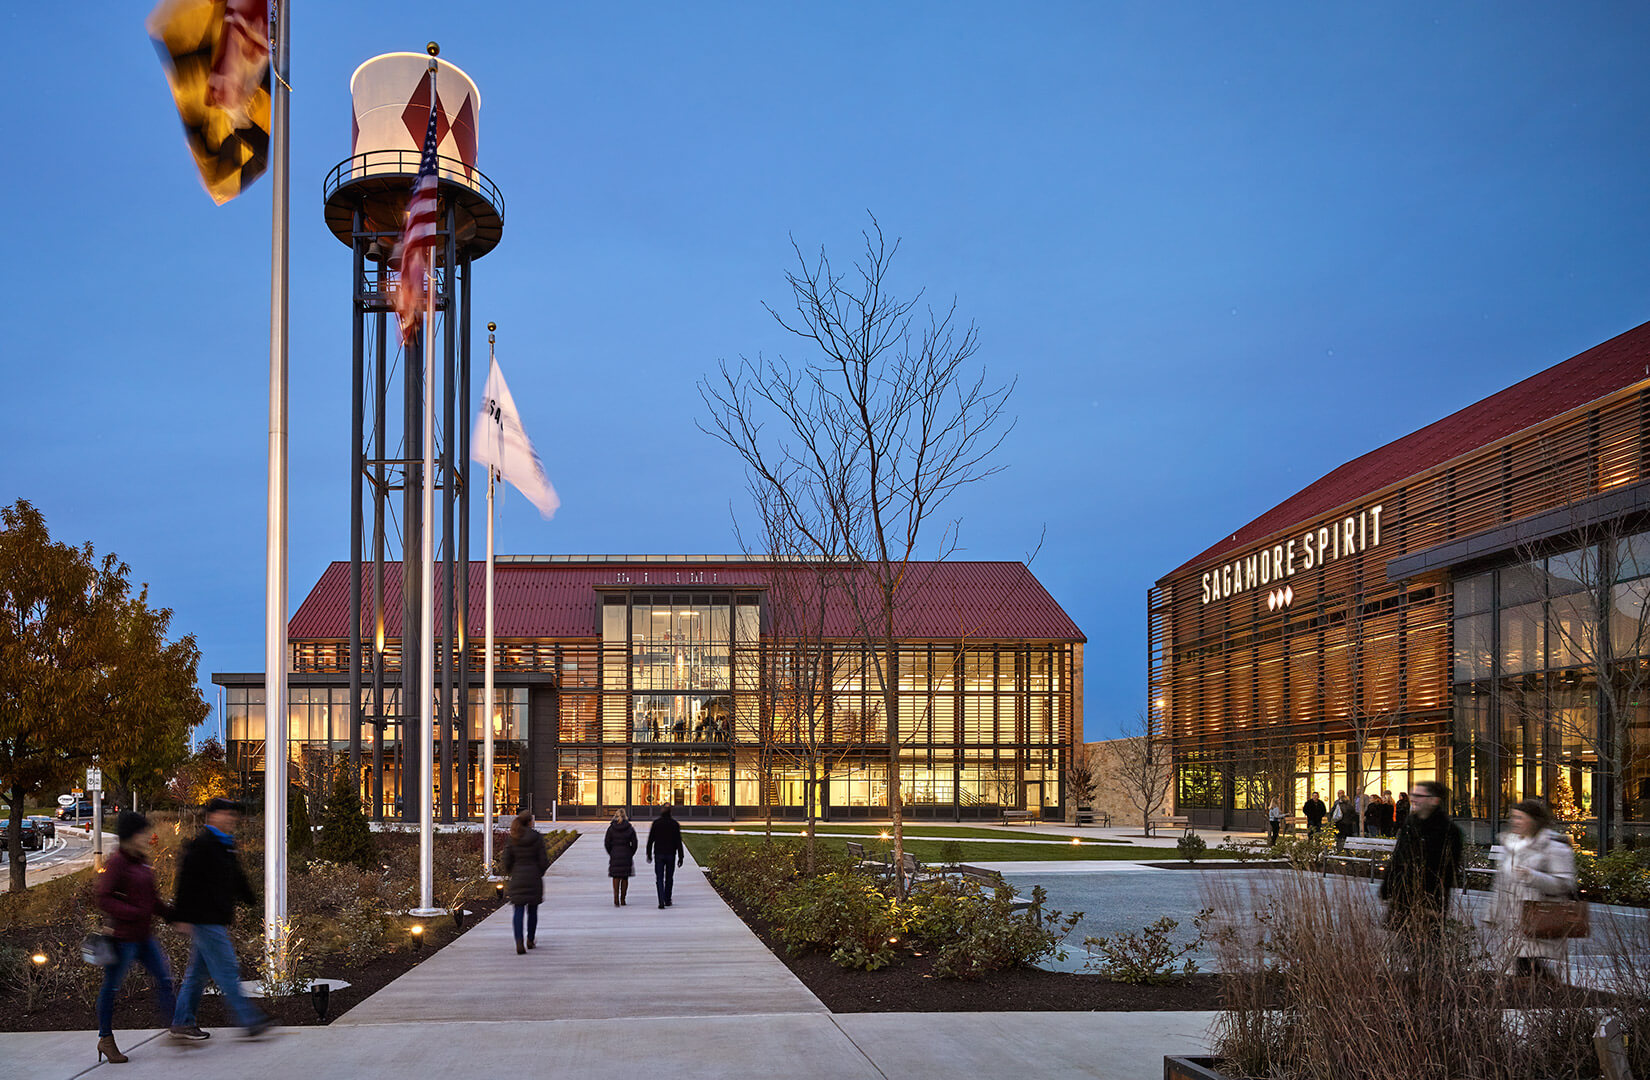 The water tower of Sagamore Spirit Distillery in Baltimore, MD